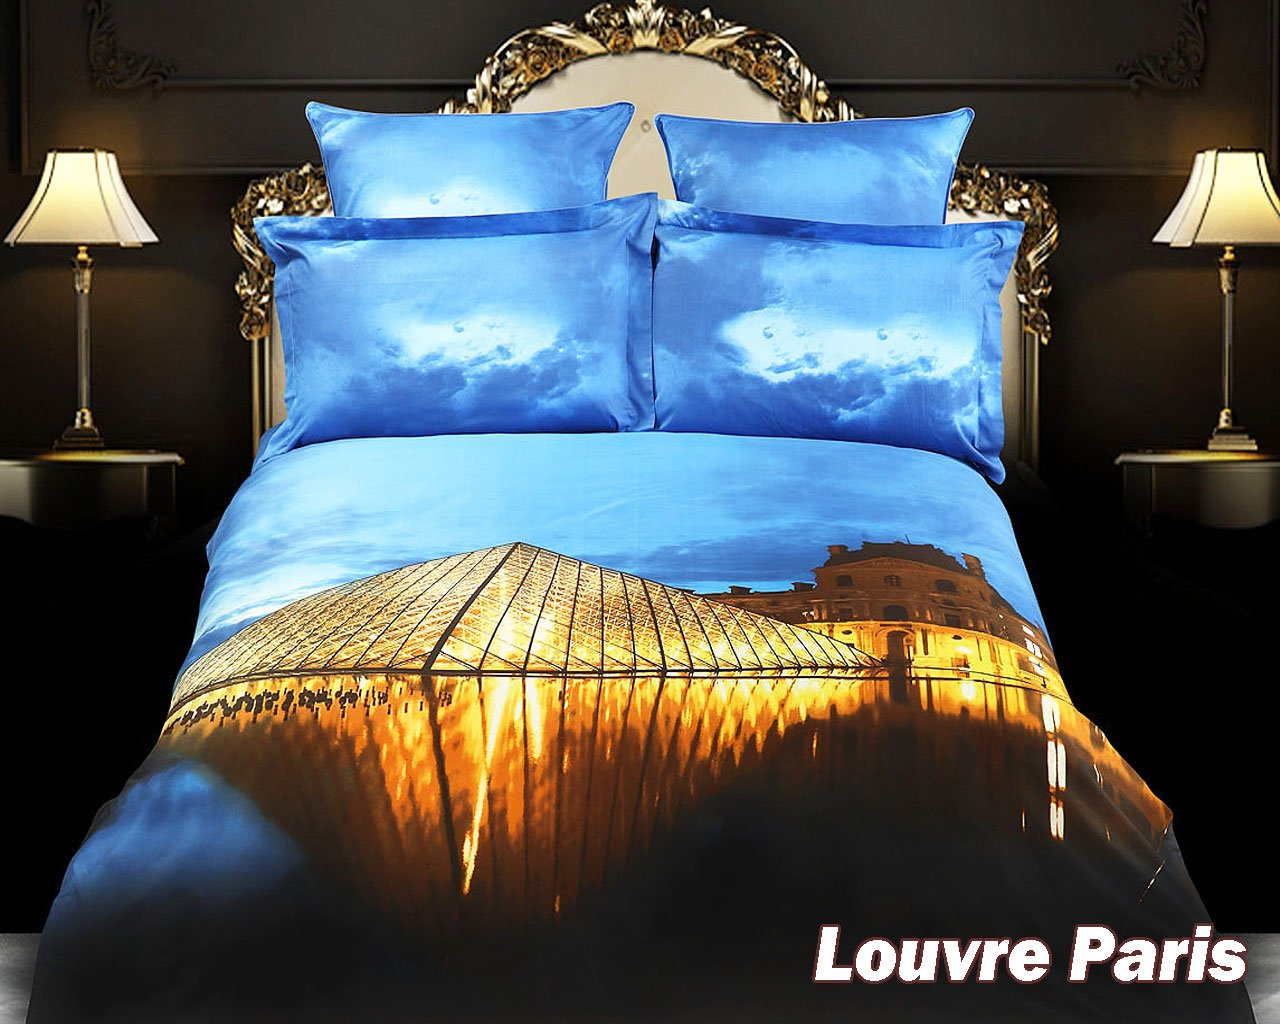 Louvre Paris, 6 PCs City Themed Bedding, King Size Egyptian Cotton Duvet Cover Set in Gift Box by Dolce Mela Fine Linens Bed in a Box, Bridal Shower, Birthday, Housewarming or Anniversary Gift Idea, DM430K